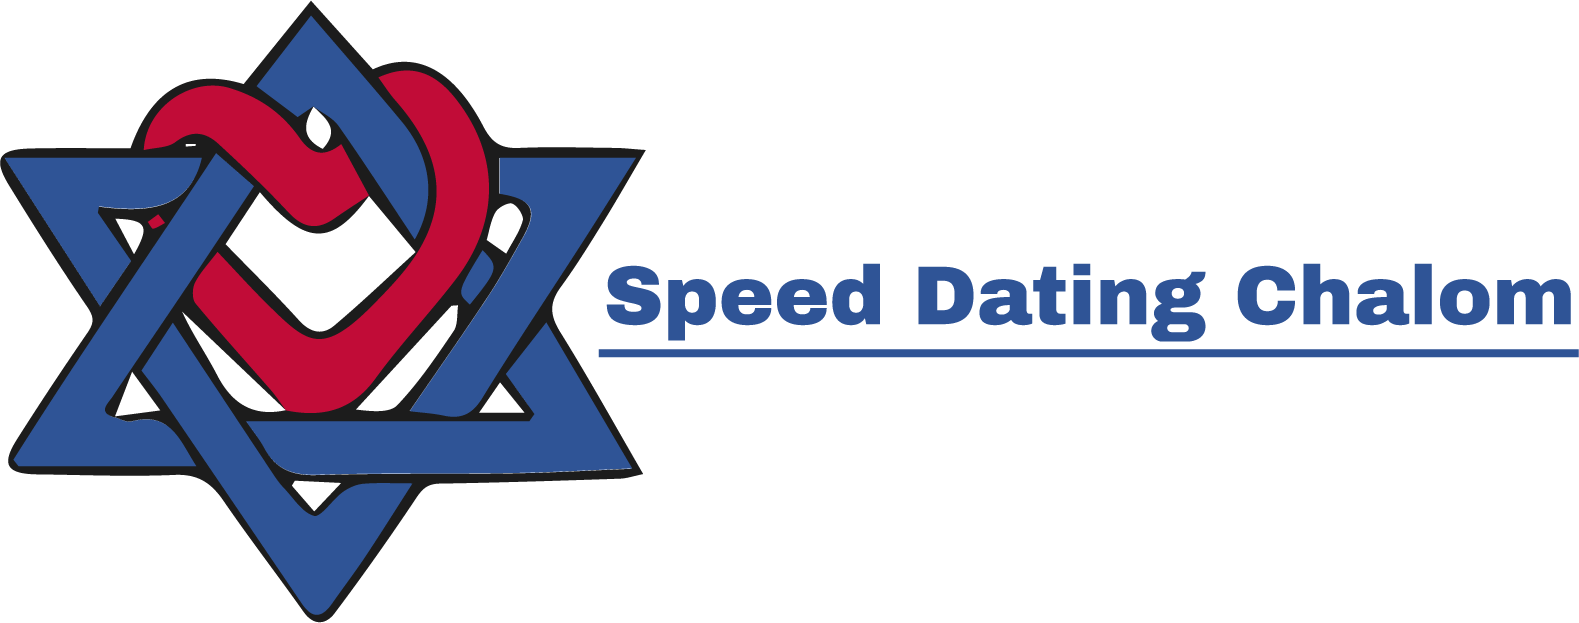 Speed Dating Chalom